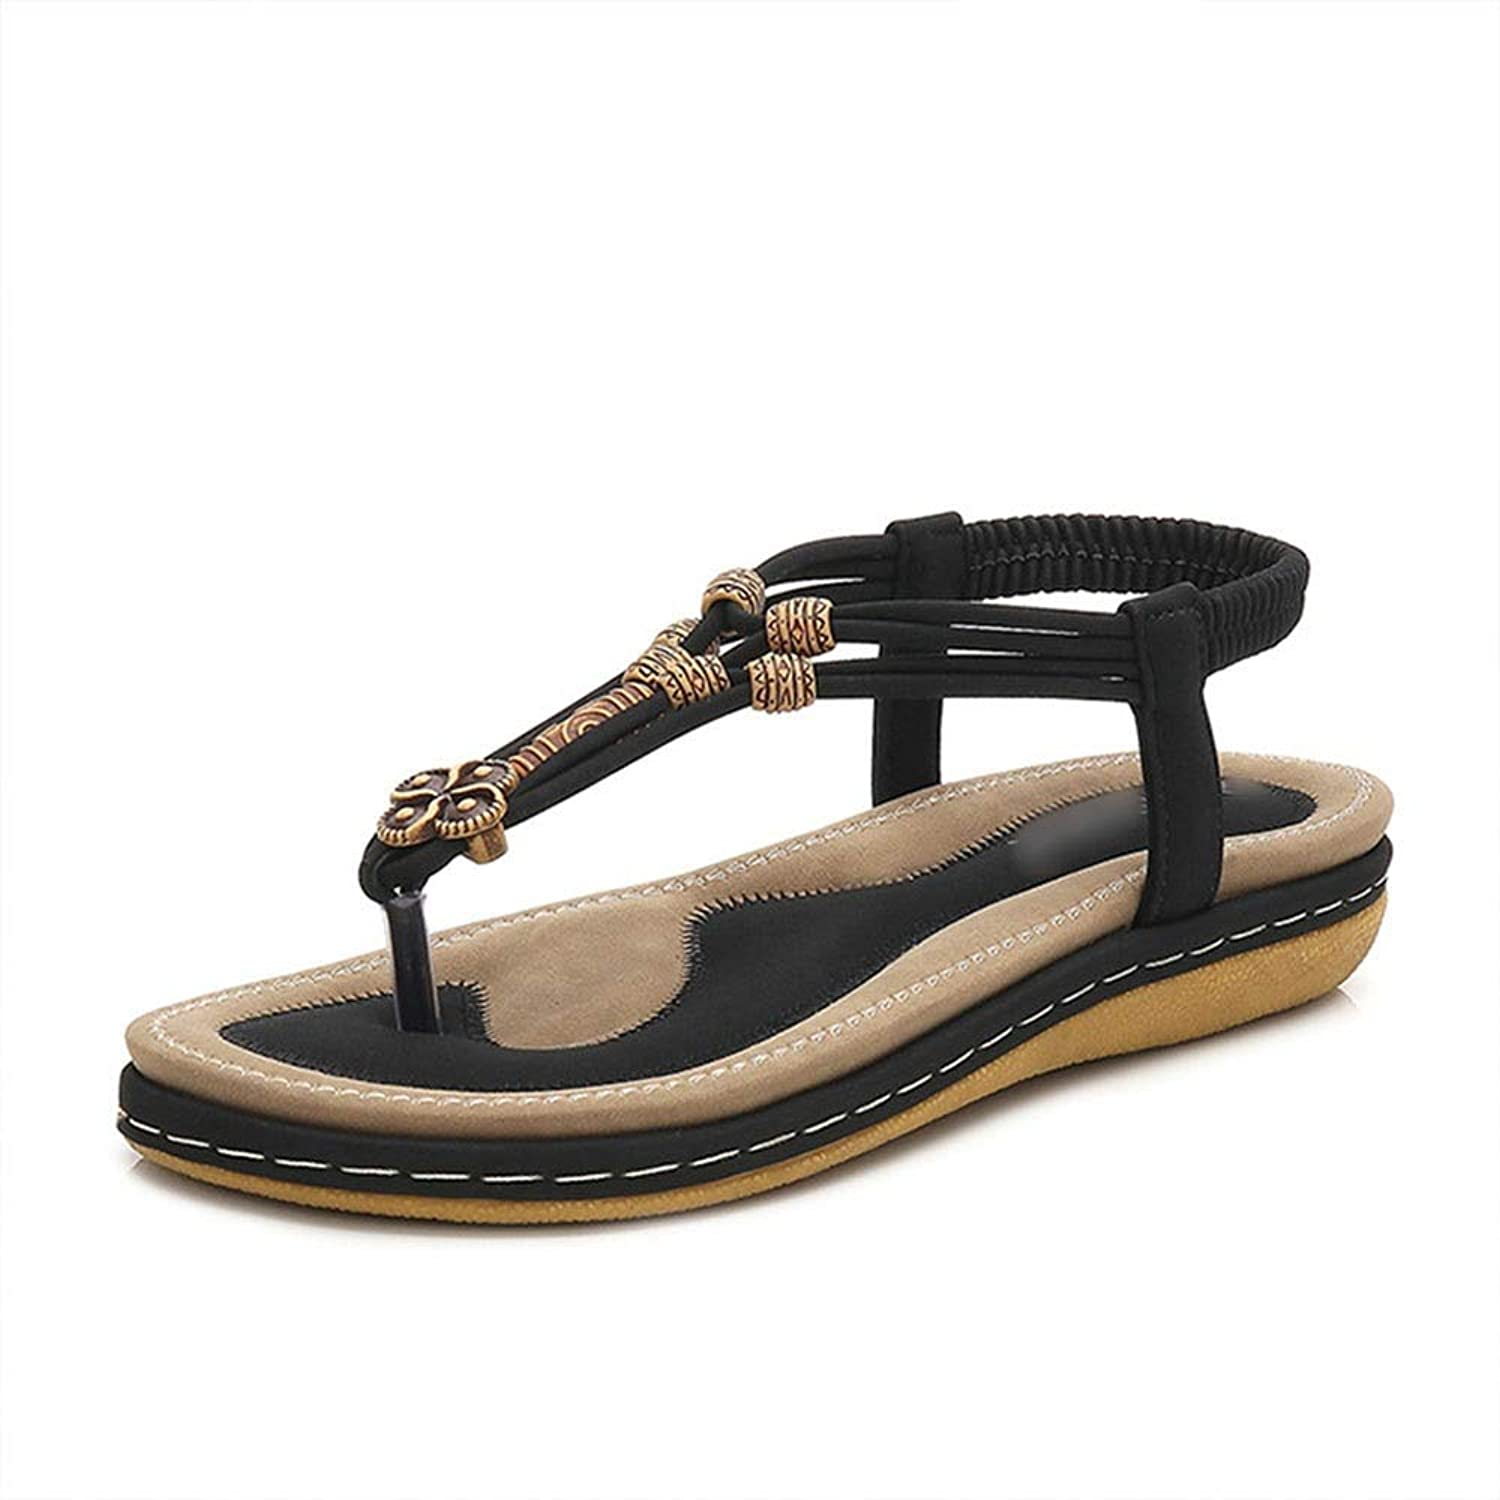 WENNEW Occasional Sandals Unresolved Toe Comfortable Women's Sandals shoes